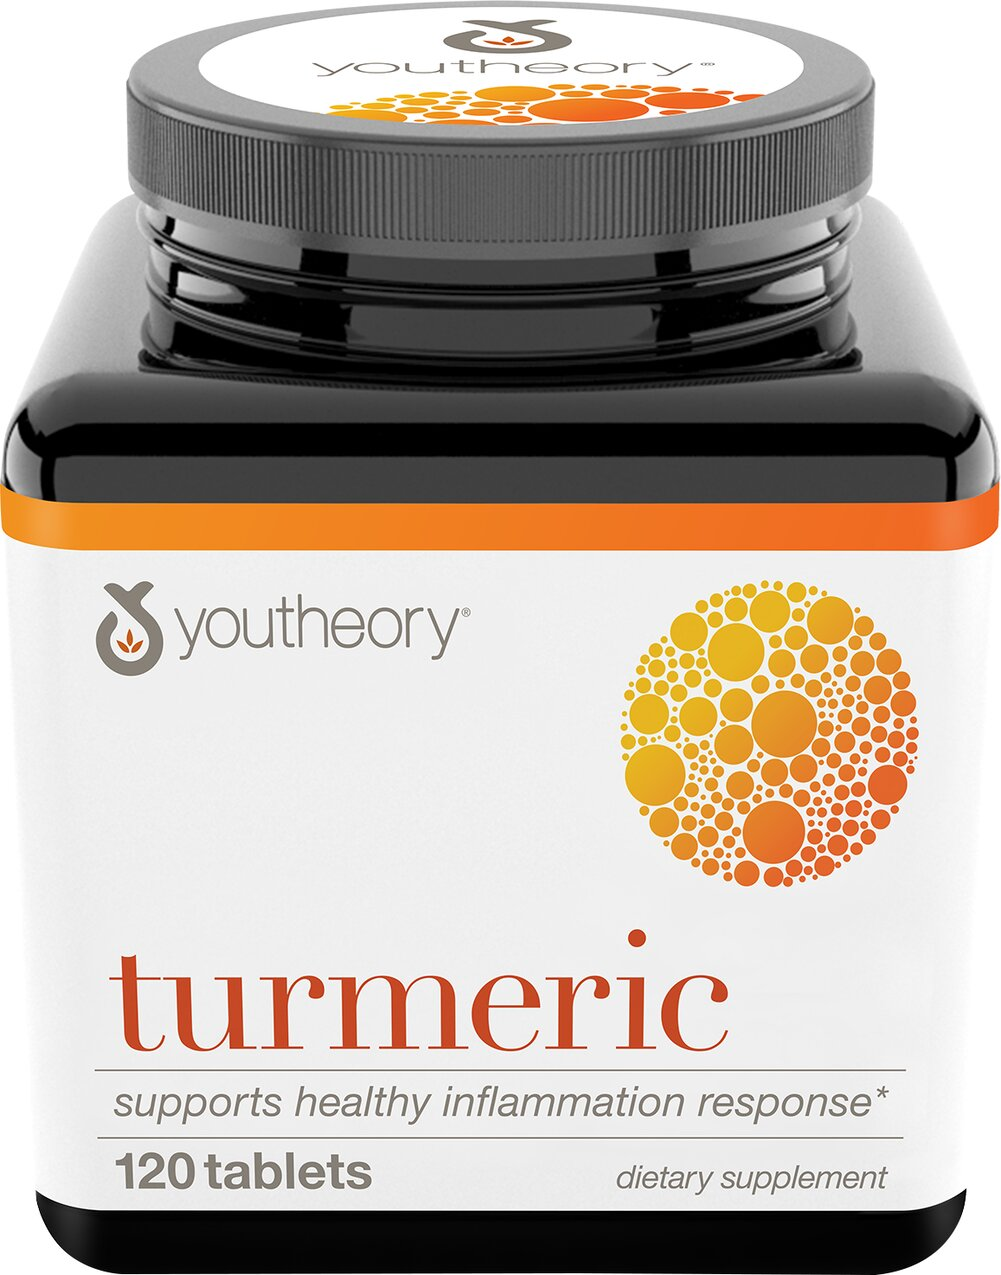 Turmeric Extract Formula  120 Tablets  $21.99